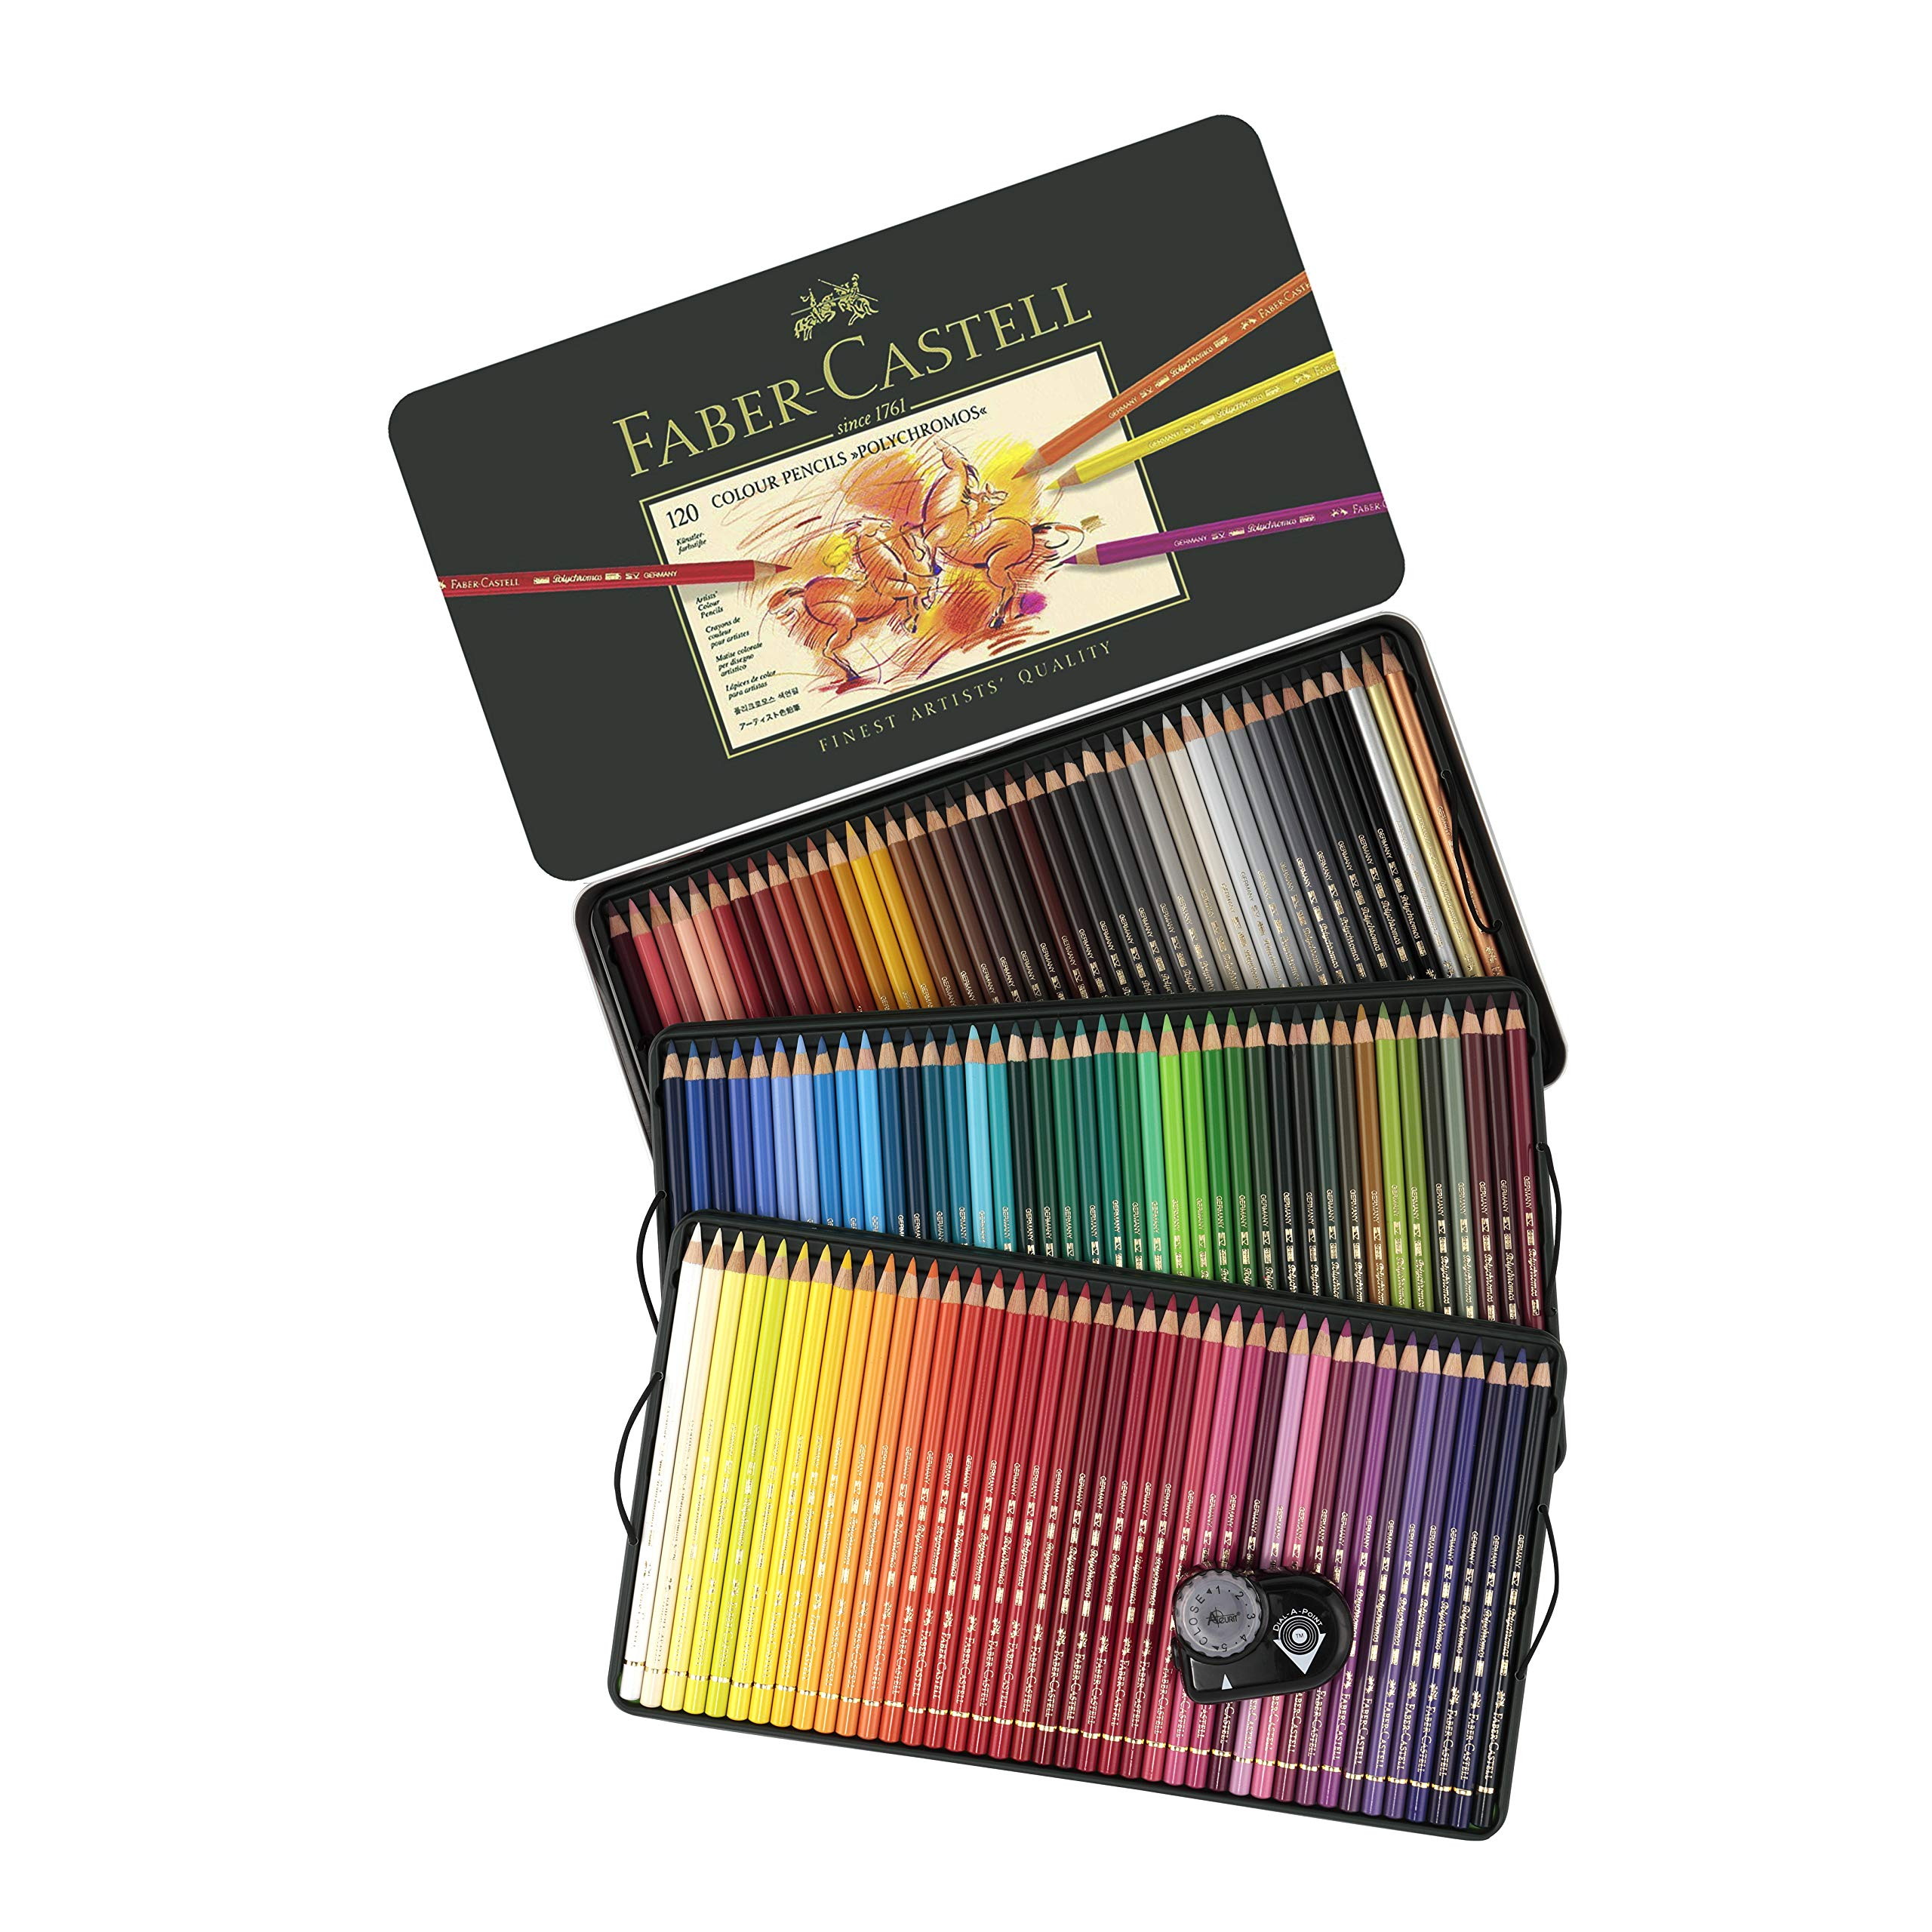 FaberCastell Polychromos Artist Colored Pencils Set - Tin of 120 Colors - Premium Quality Polychromos Colored Pencils 120 Set Art Supplies Set for Arts and Crafts Includes Pencil Sharpener by JERRY'S ARTARAMA